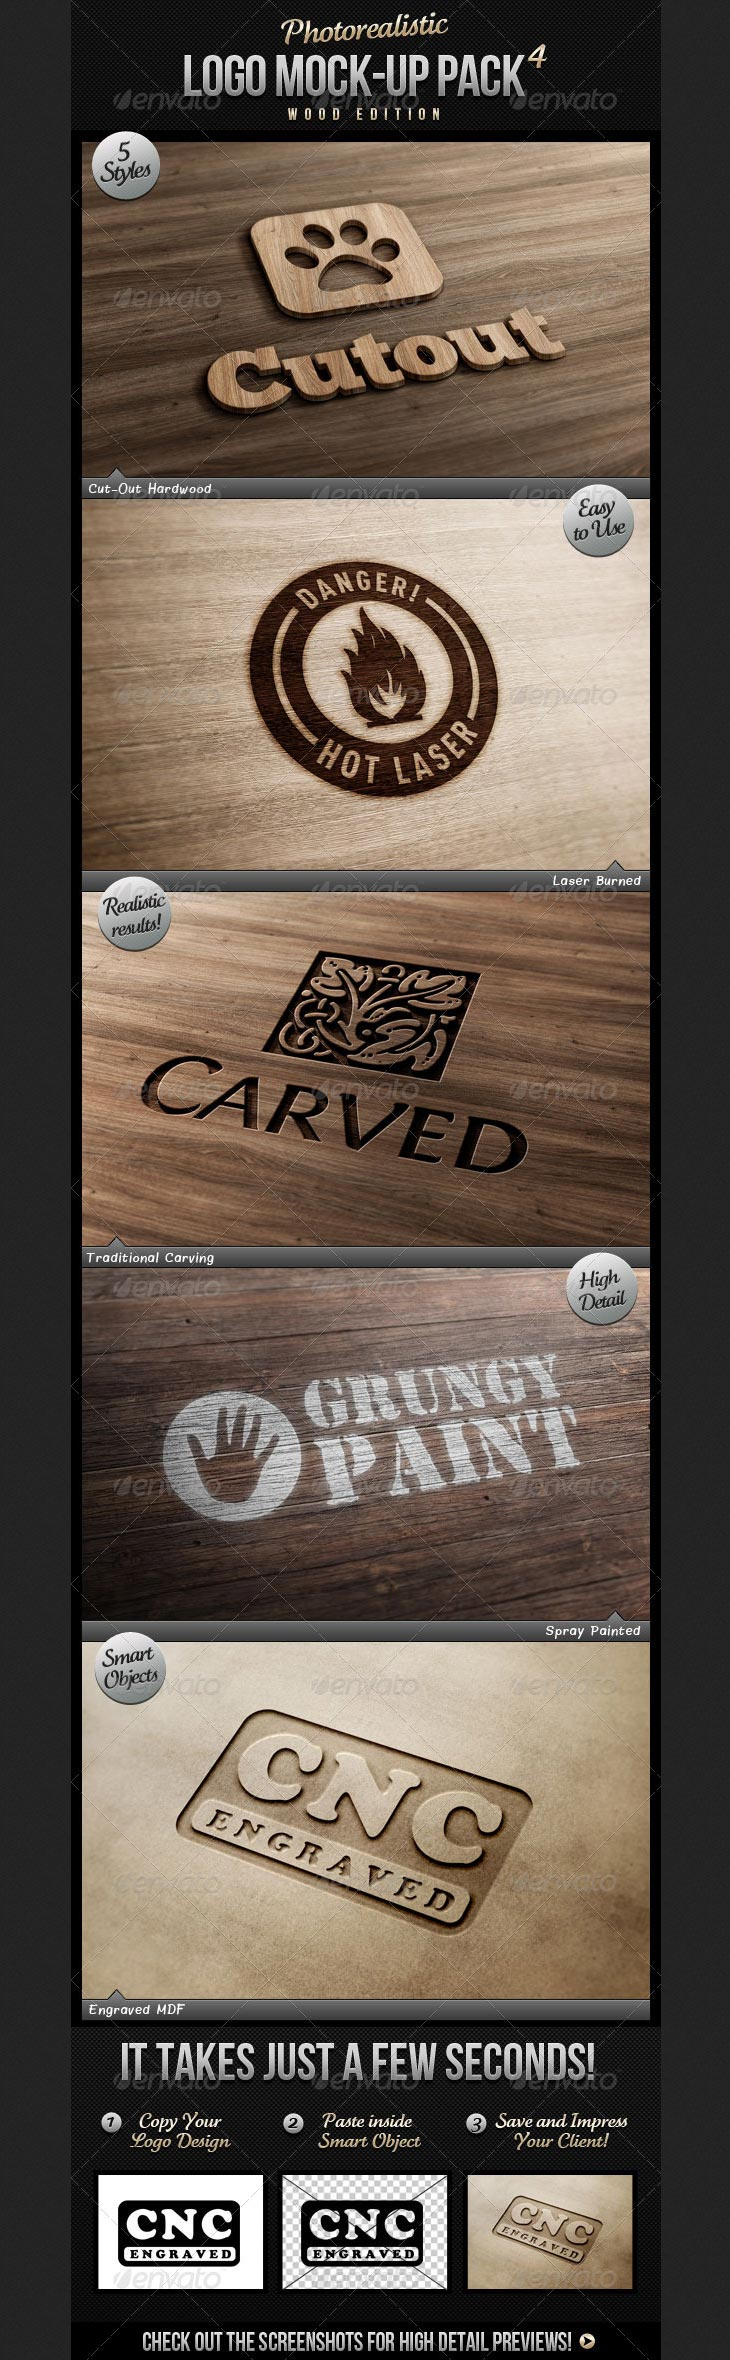 Photorealistic Logo Mock-Up Pack 4 - Wood Edition